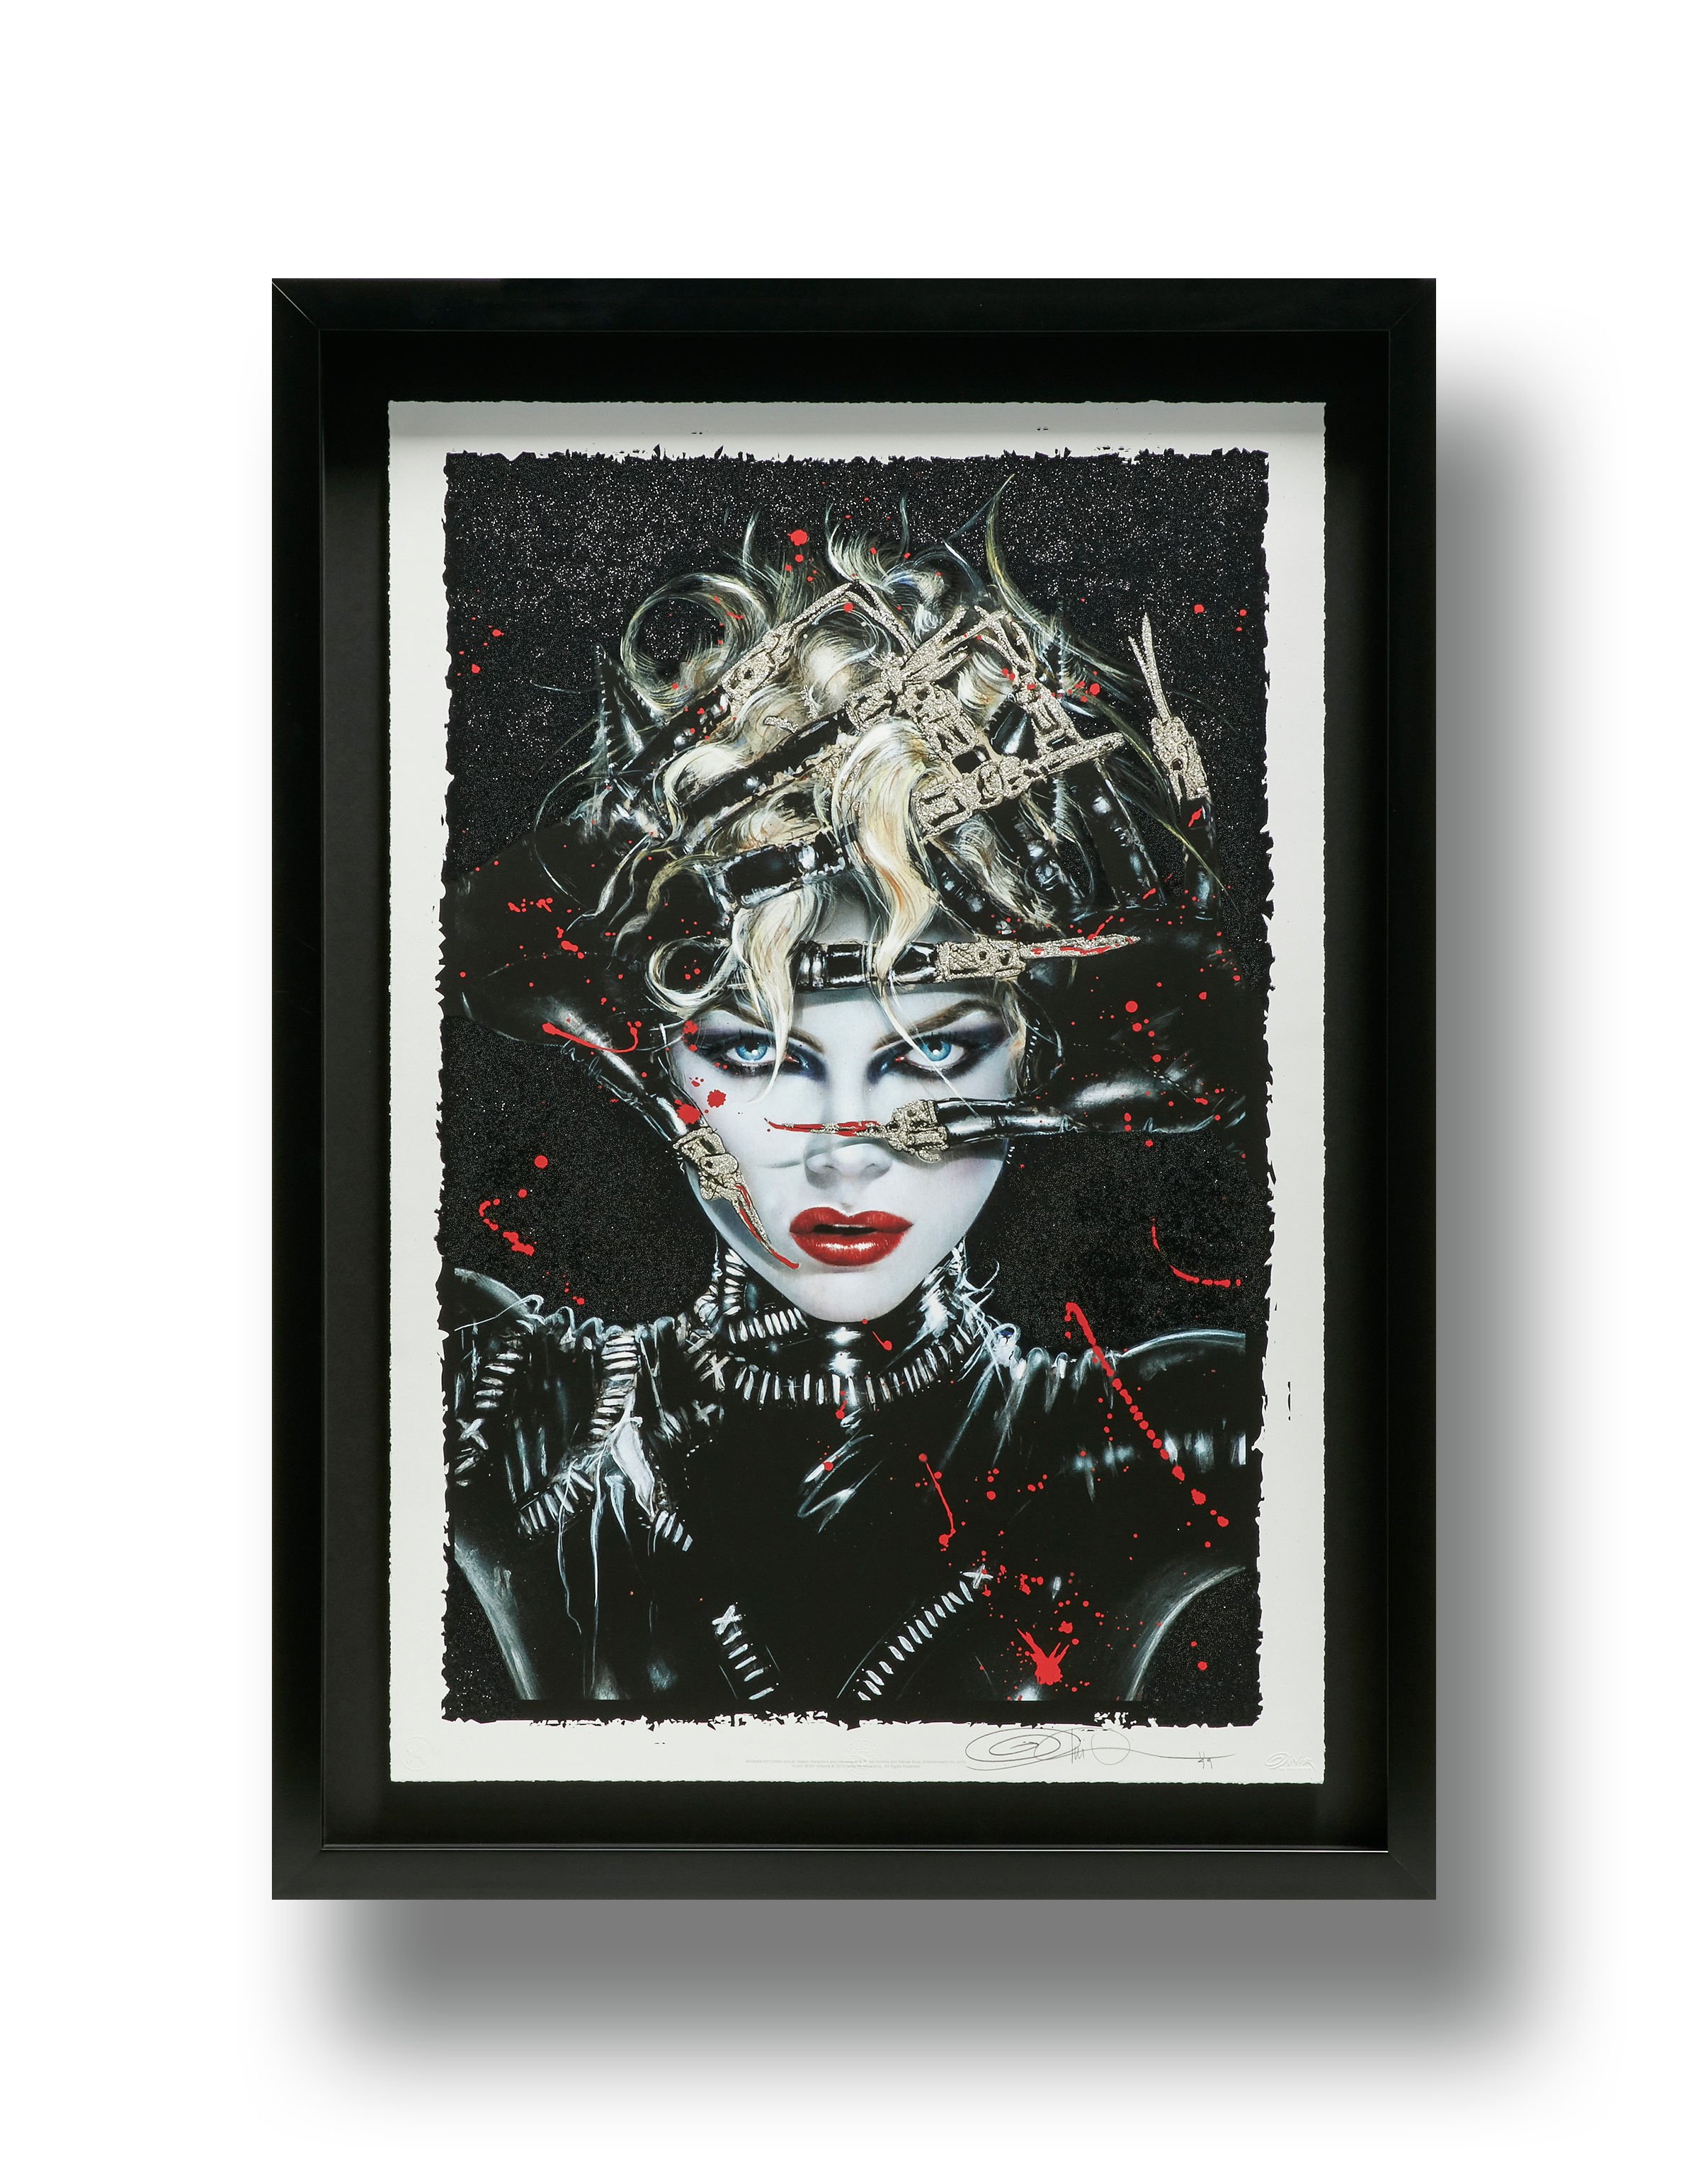 """""""Chat Noir""""  2019 XL Deluxe Diamond Dust Fine Art Print  Hand-embellished silkscreen and diamond dust  40 x 27 inches (unframed) 47 x 34 inches (framed)   INQUIRE"""